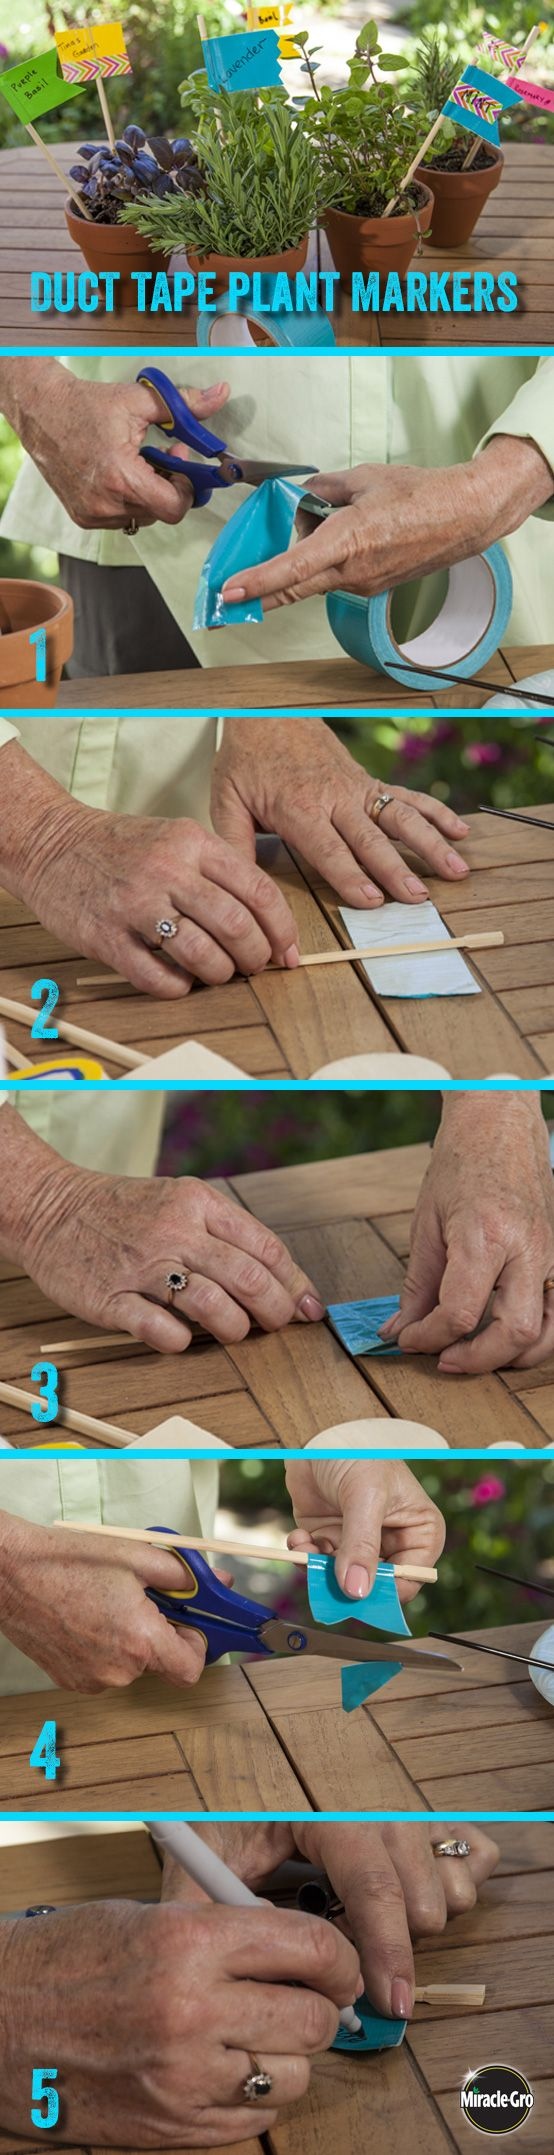 #DIY duct tape plant markers make #entertaining easy colorful. Catch the steps at the 2:15 mark.